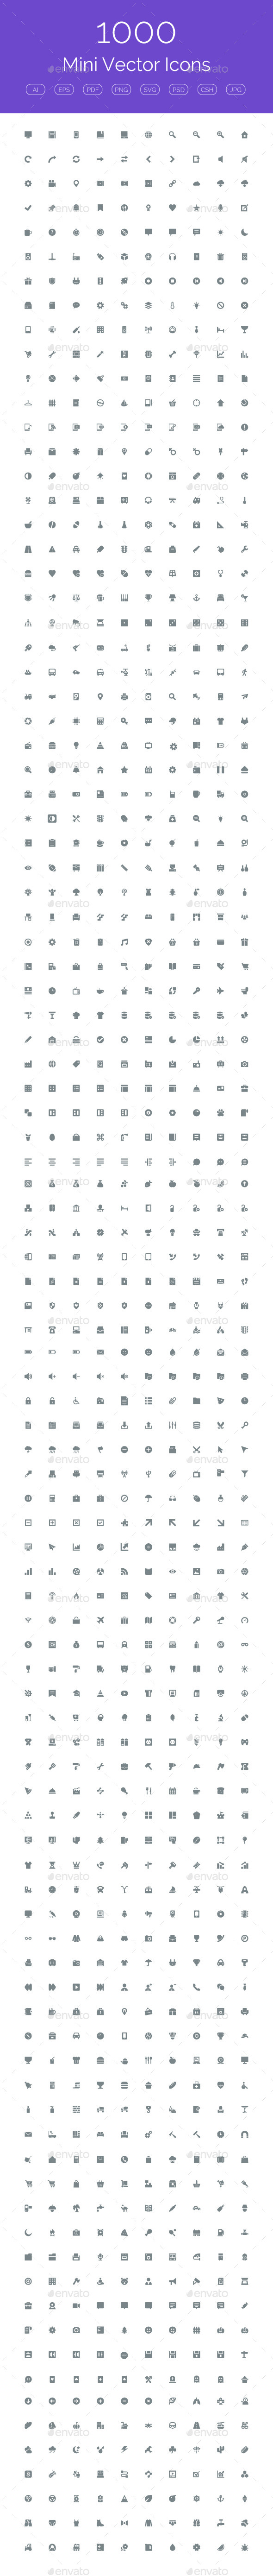 GraphicRiver 1000 Mini Vector Icons 11212182